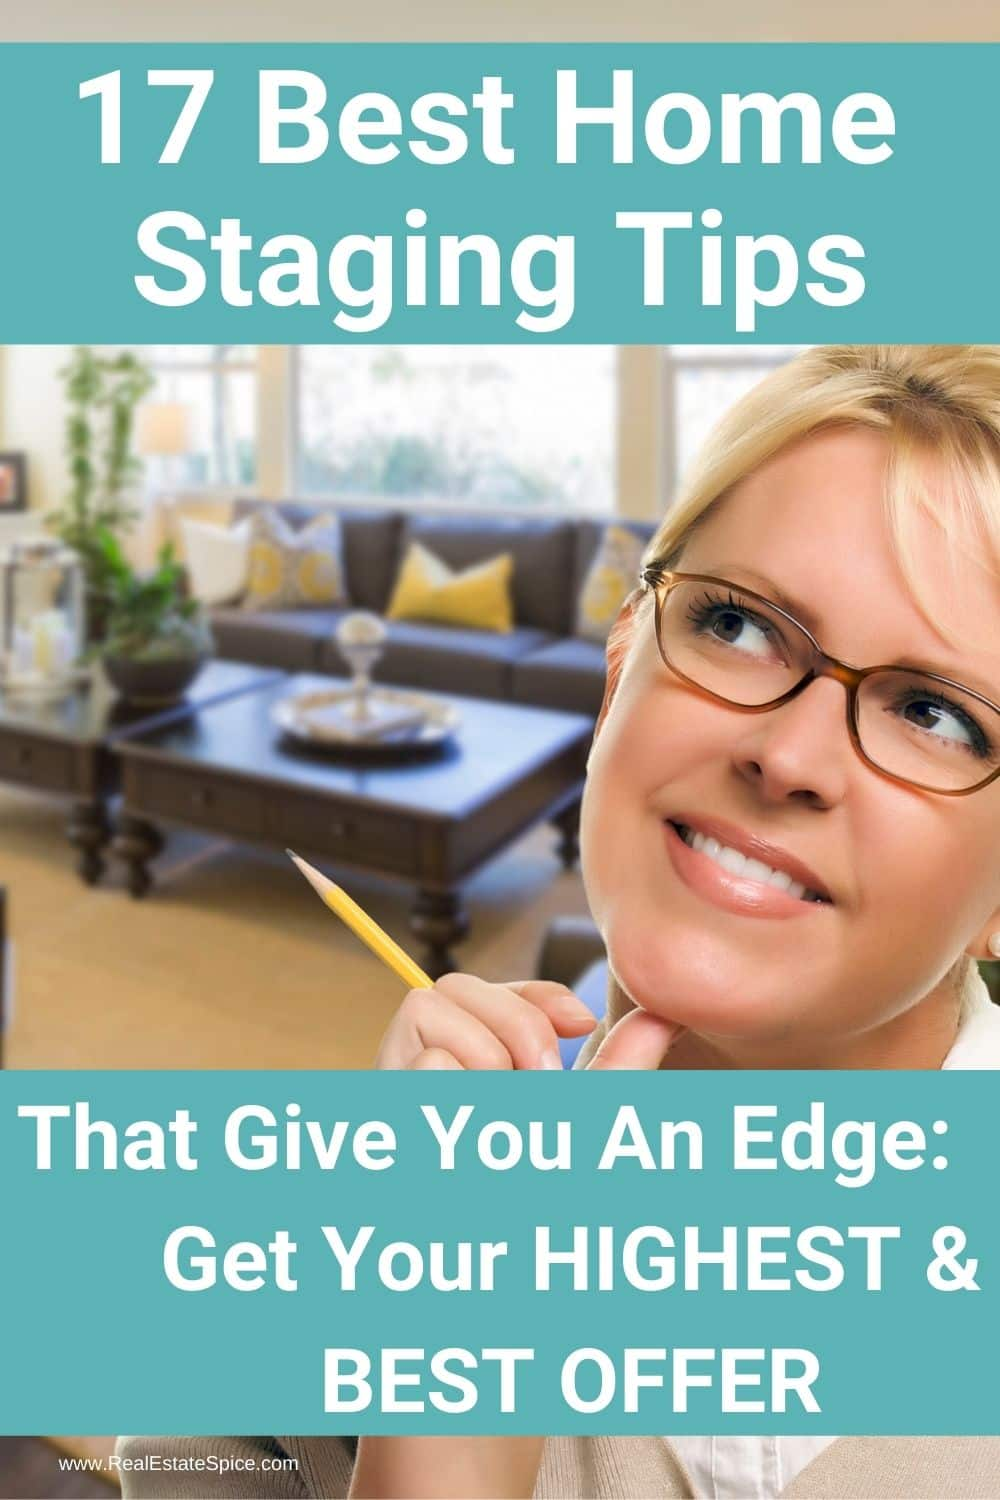 Woman thinking Holding a pencil says 17 best home staging tips that give you an edge